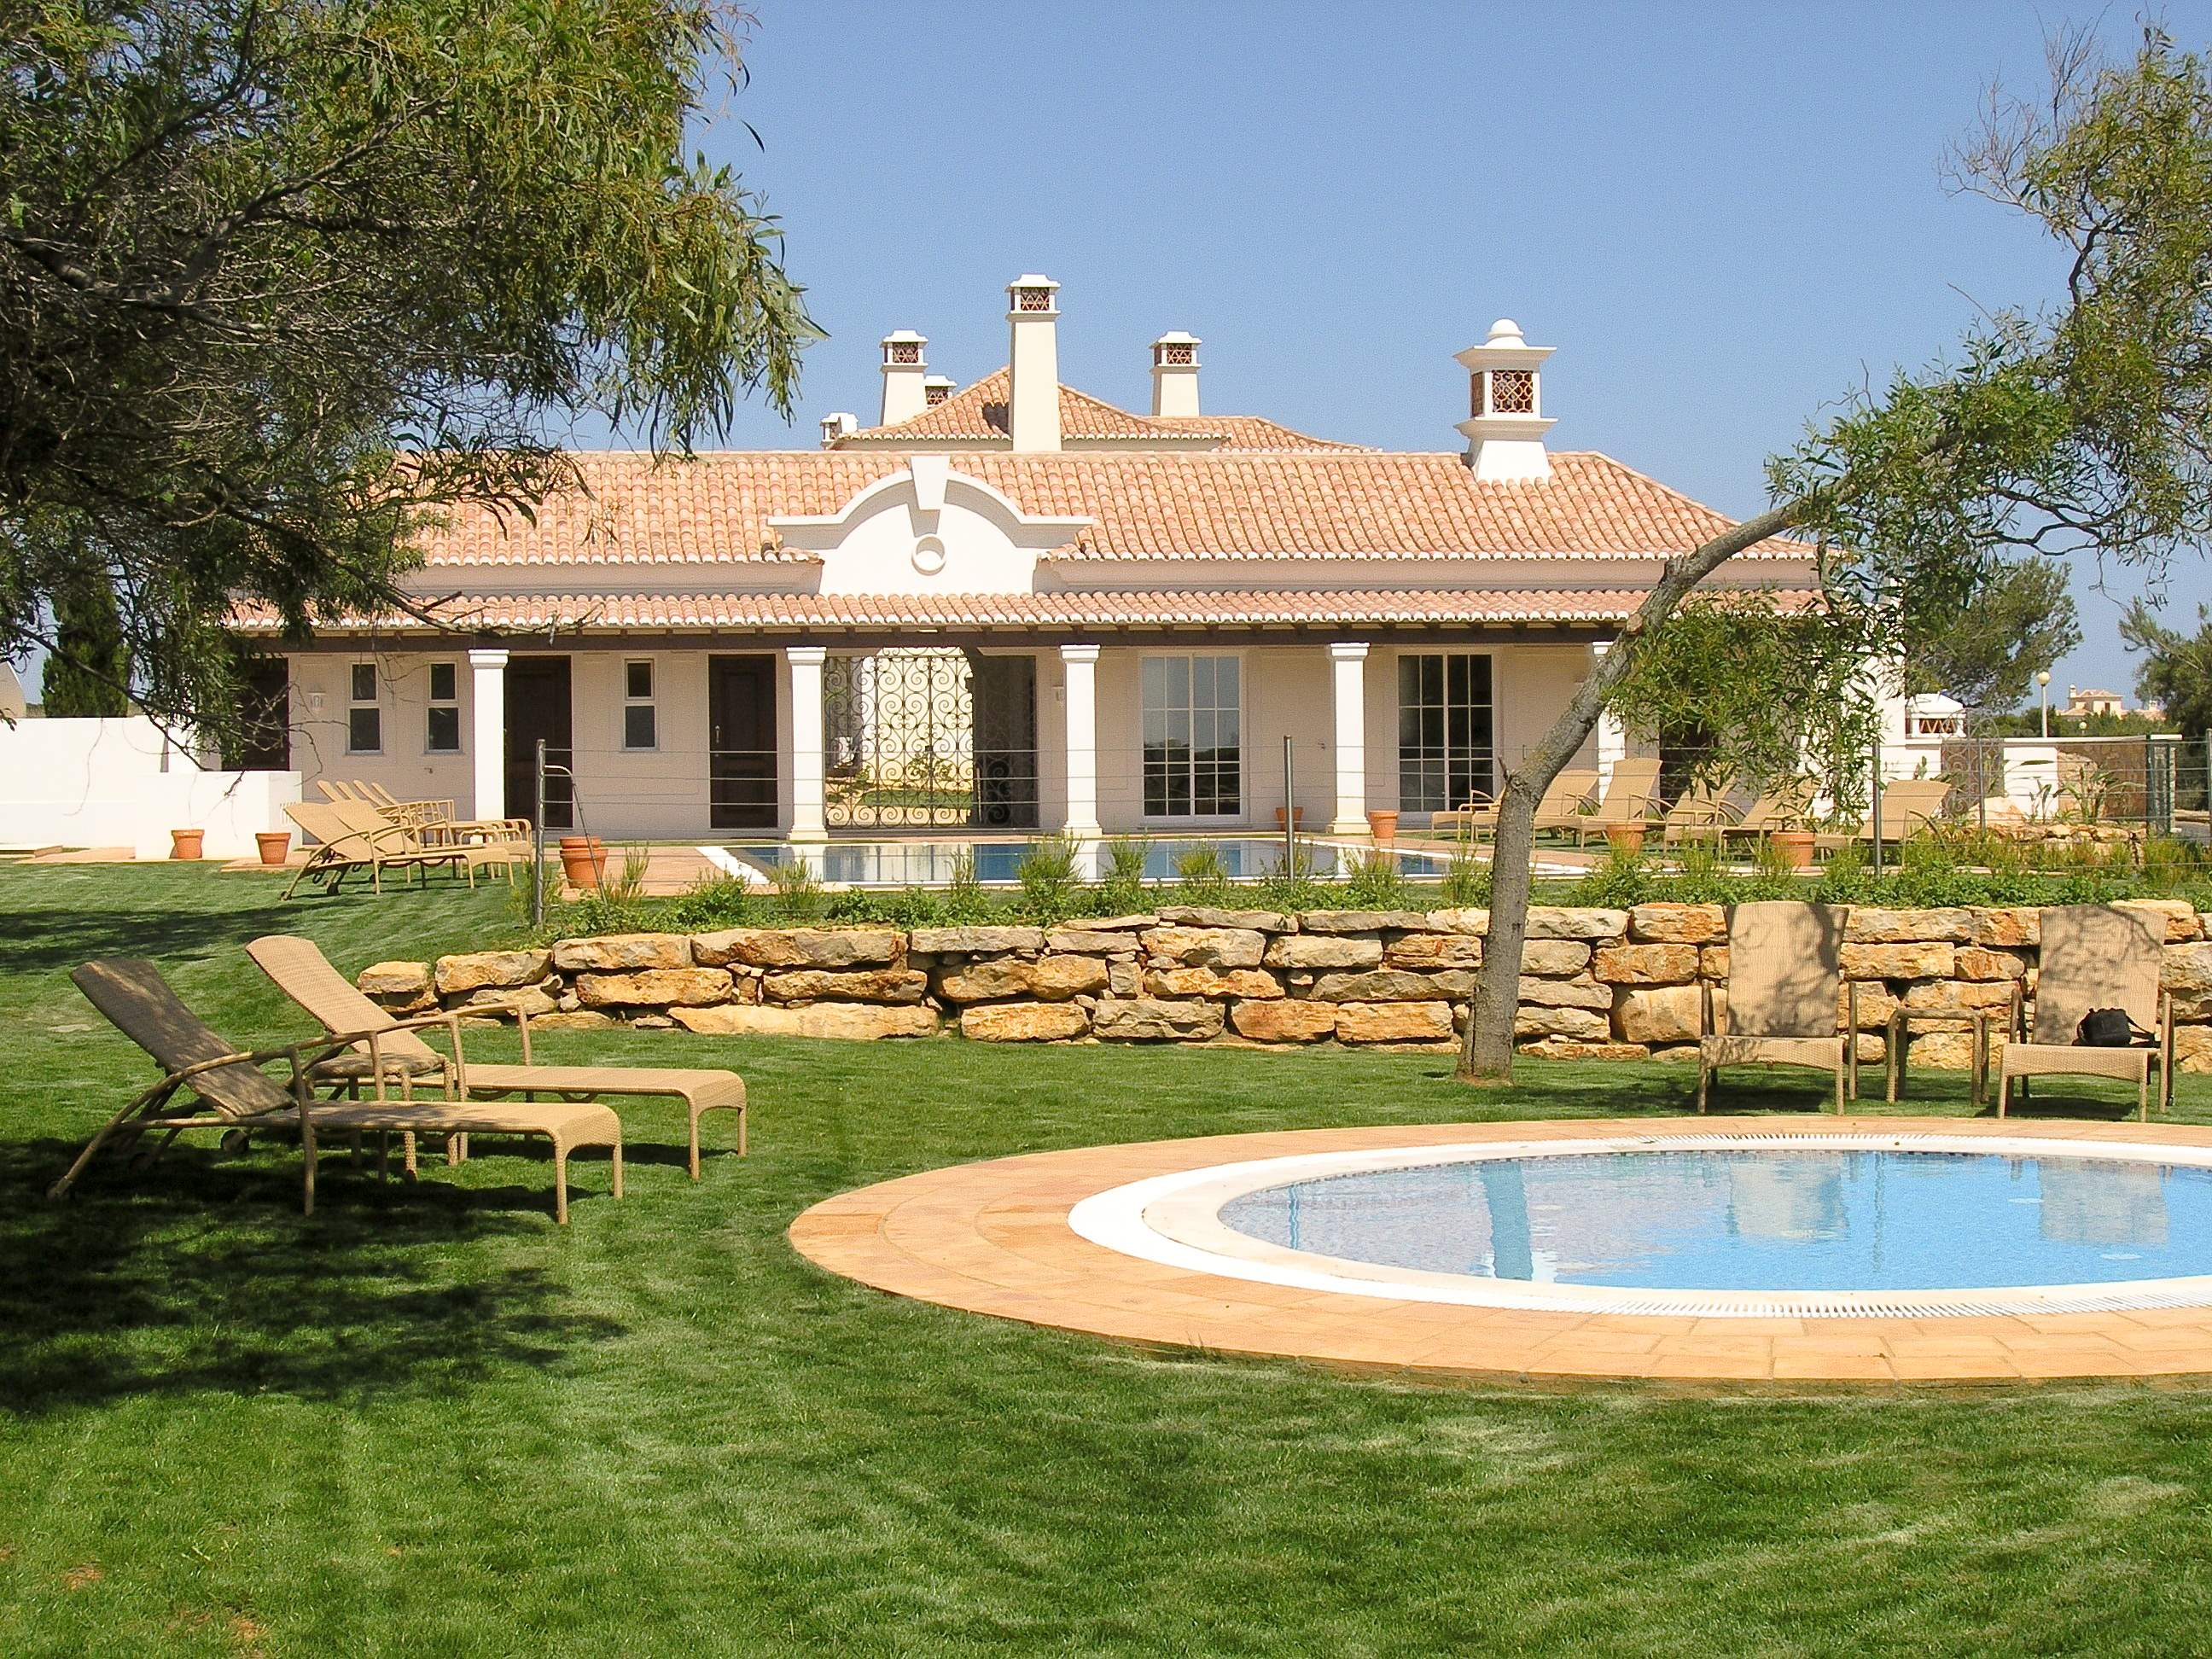 Martinhal Vilas Mimosa Two Bedroom, 2 bedroom villa in Martinhal Sagres, Algarve Photo #3